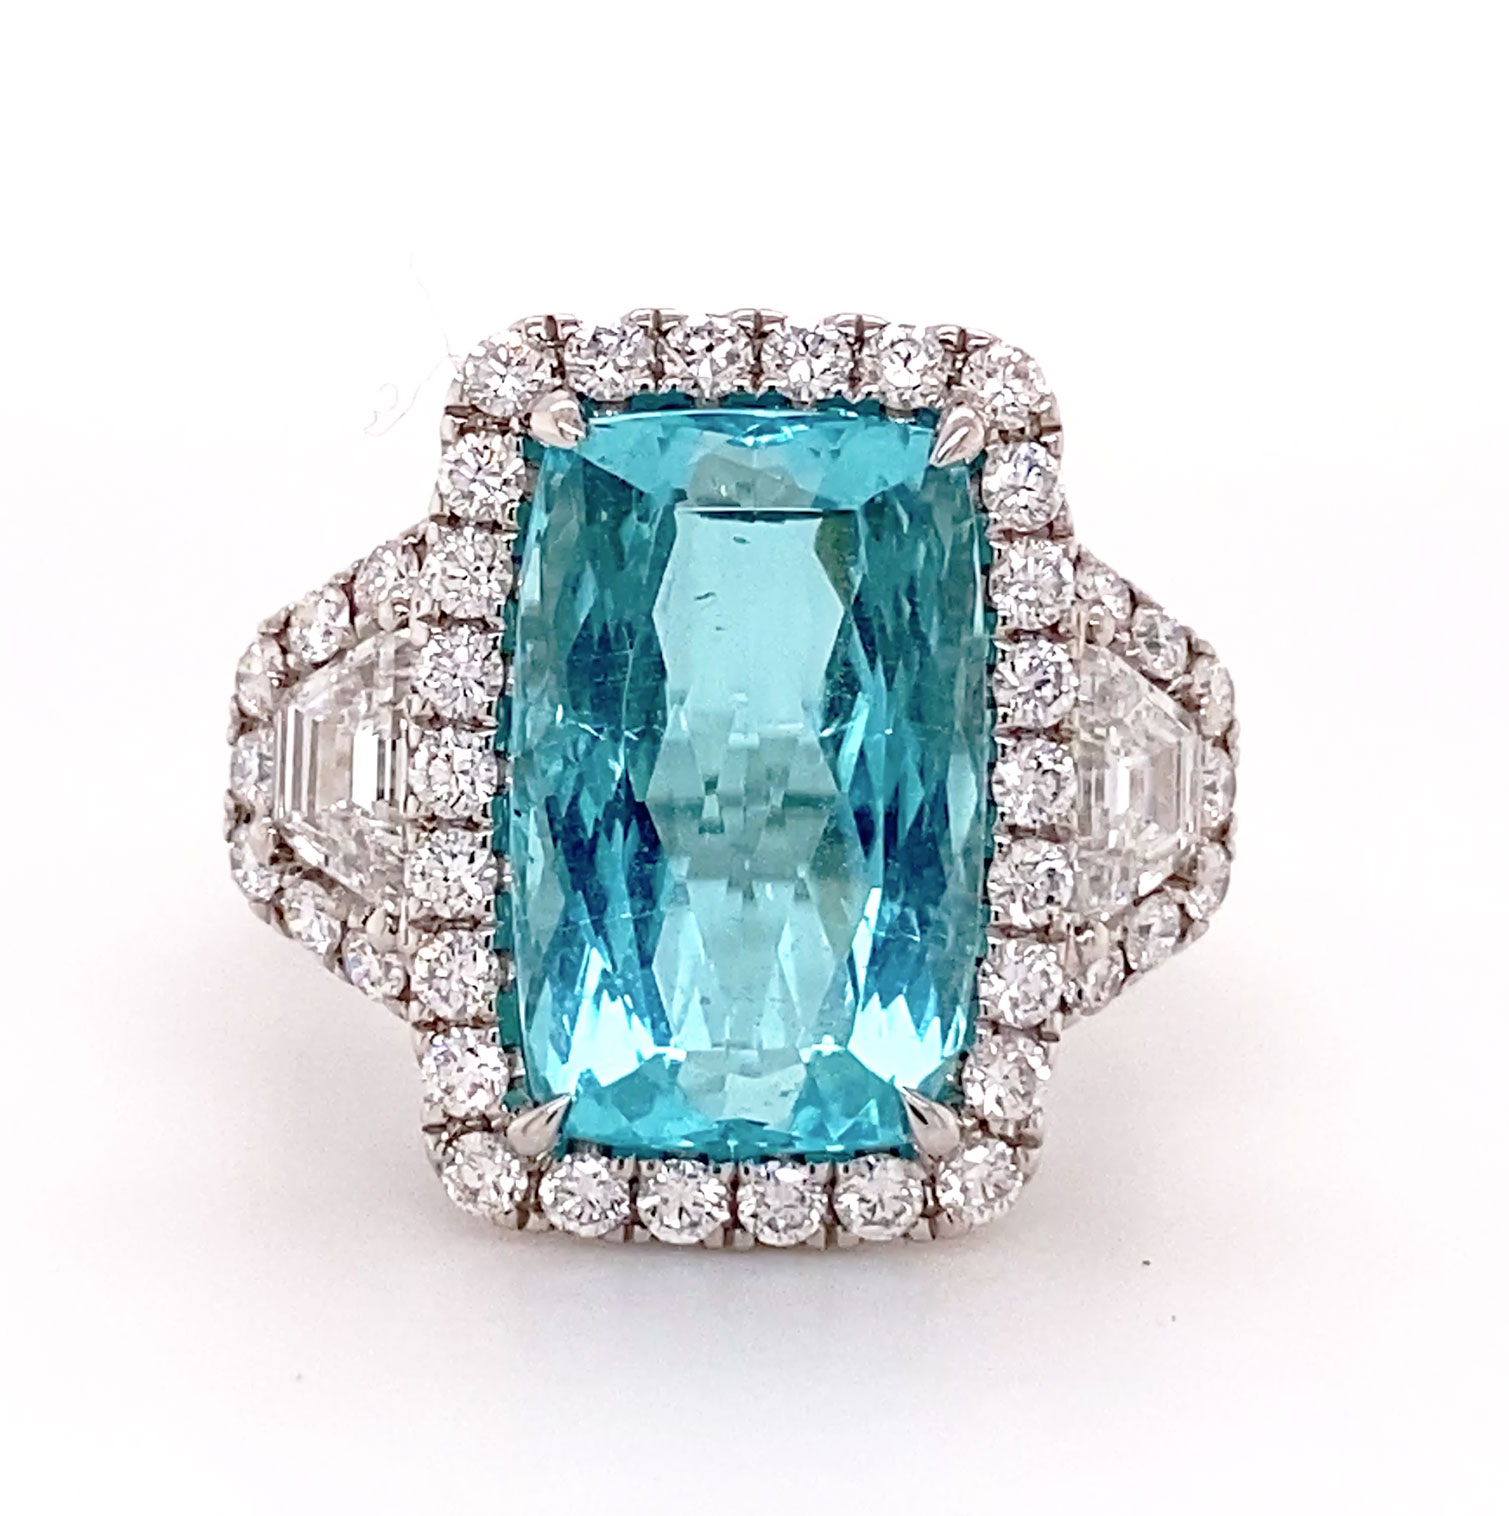 An important Cuprian mint-blue cushion-cut Tourmaline ring accented with multiple levels of pave set Diamonds